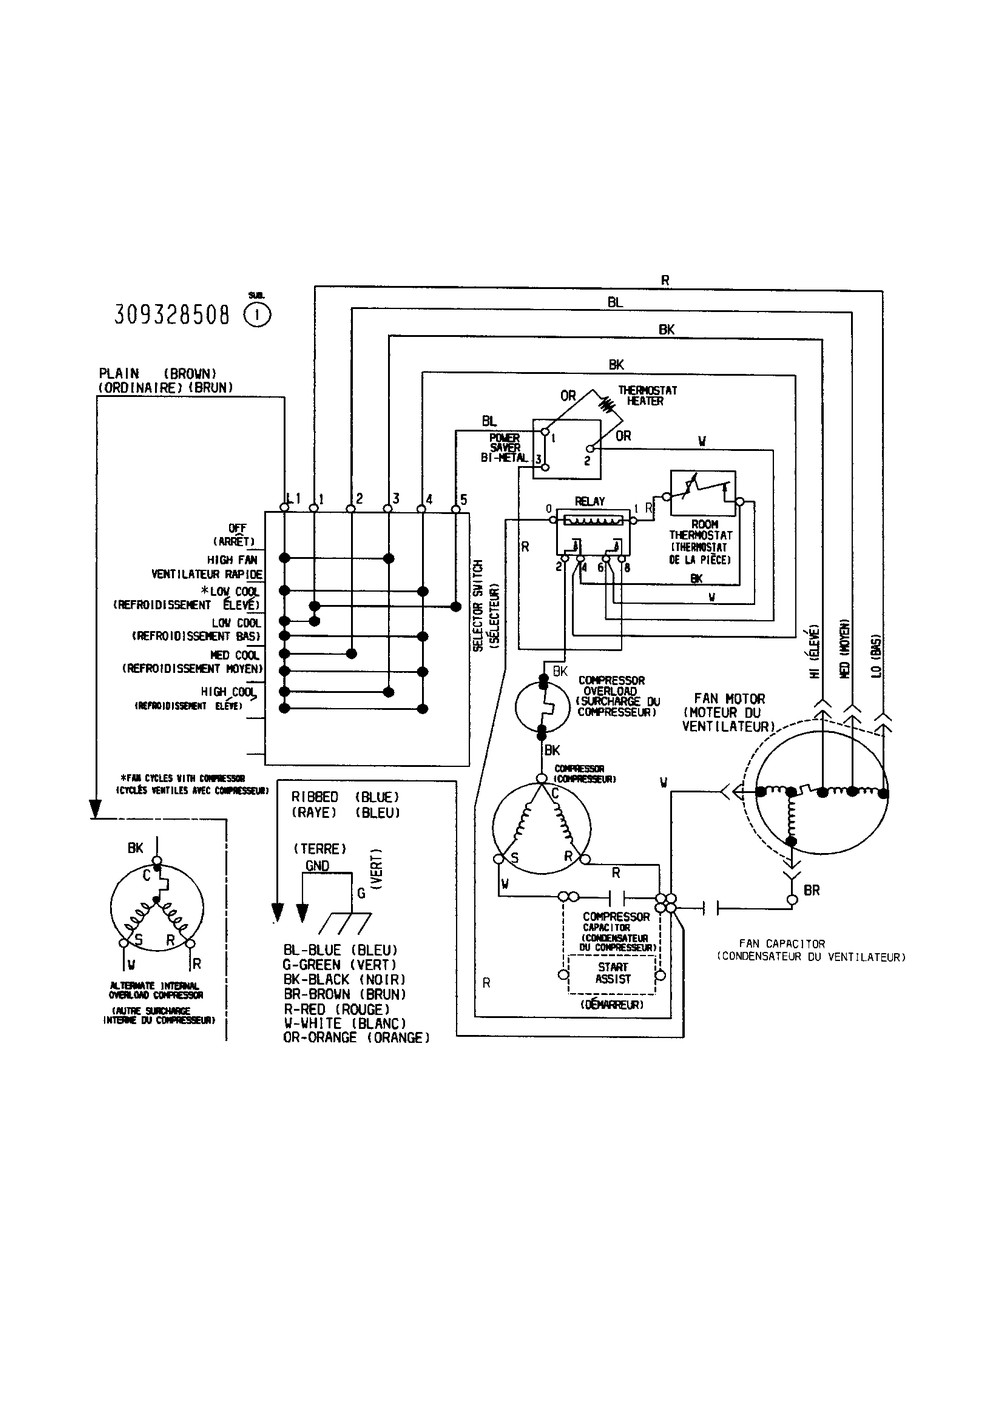 Wiring Diagram For A Kenmore Dryer Database